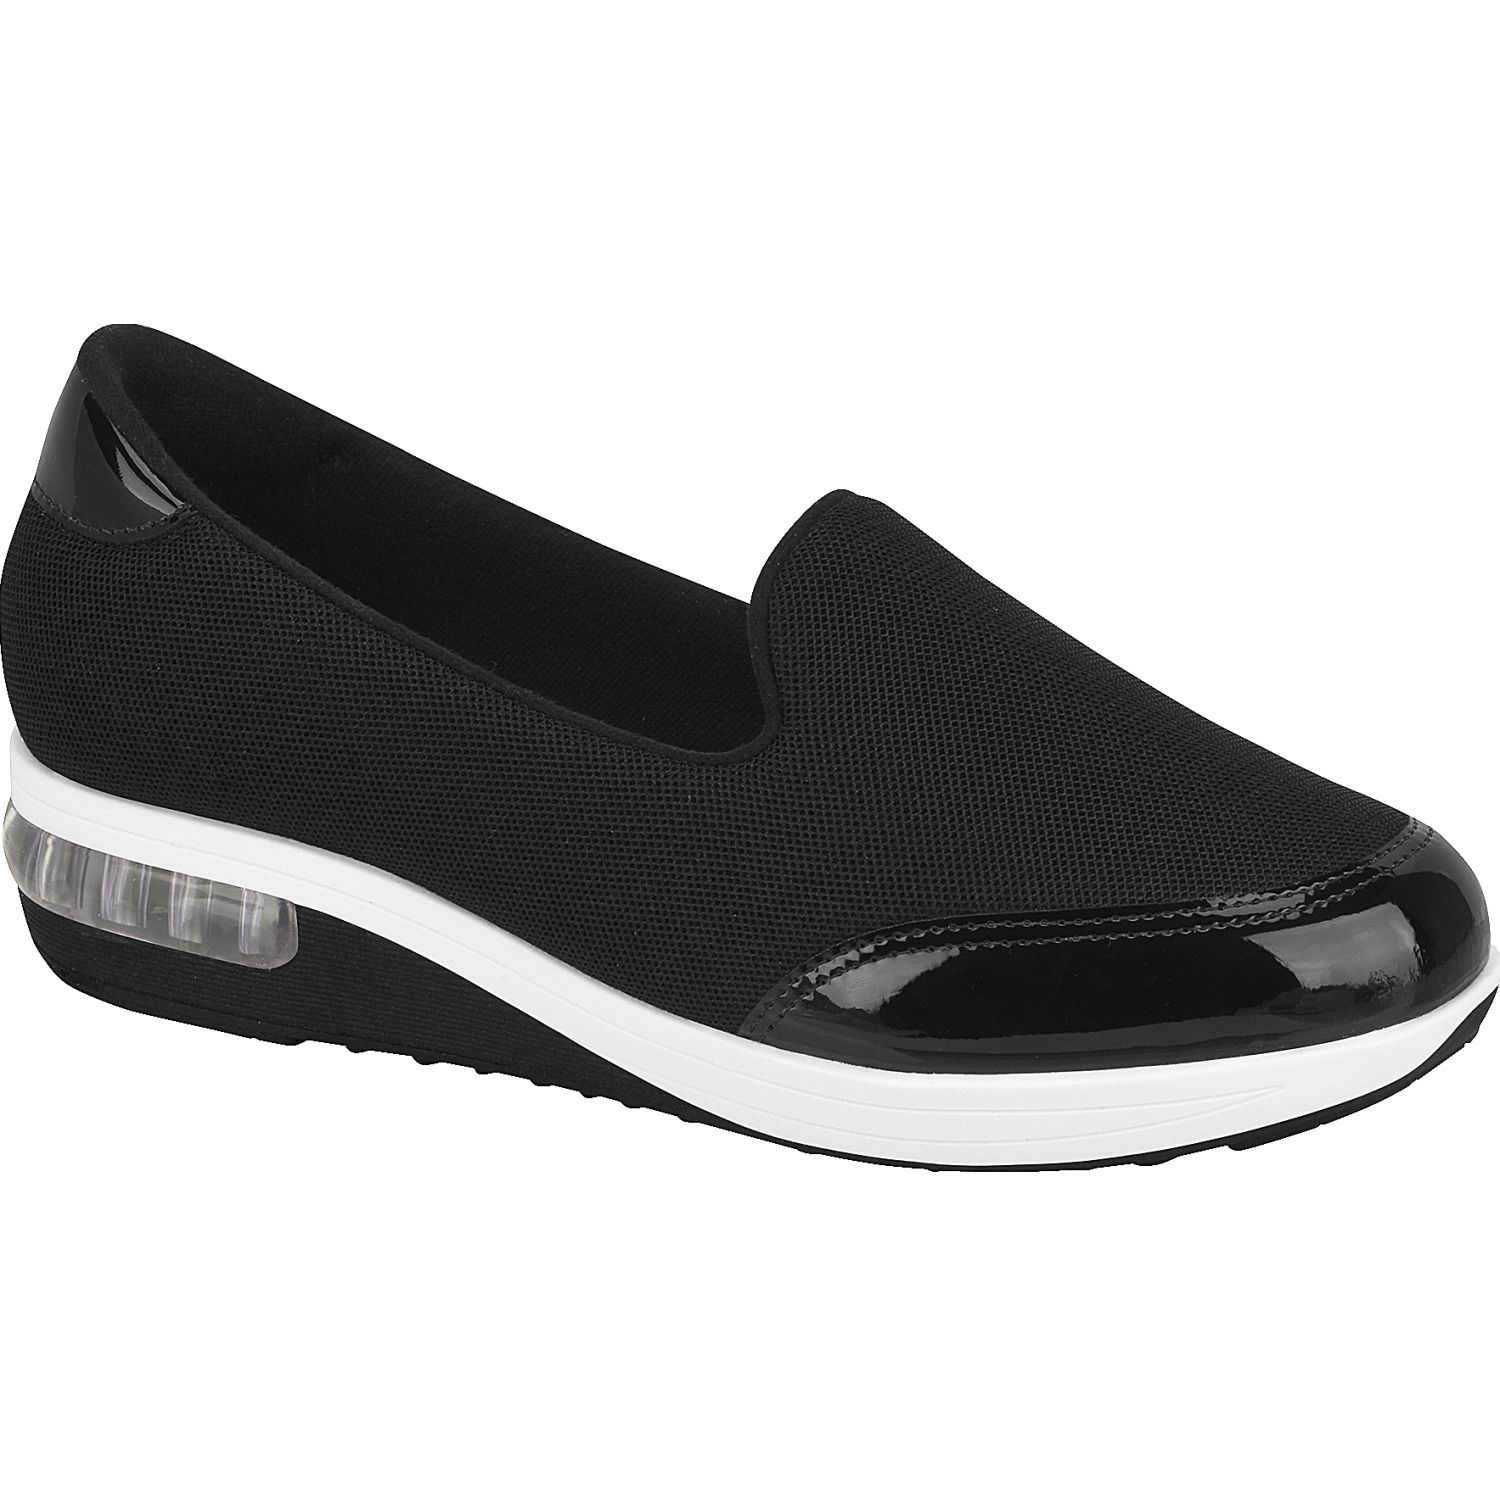 MODARE 7320.201.19161-15745 Negro Zapatillas Fashion